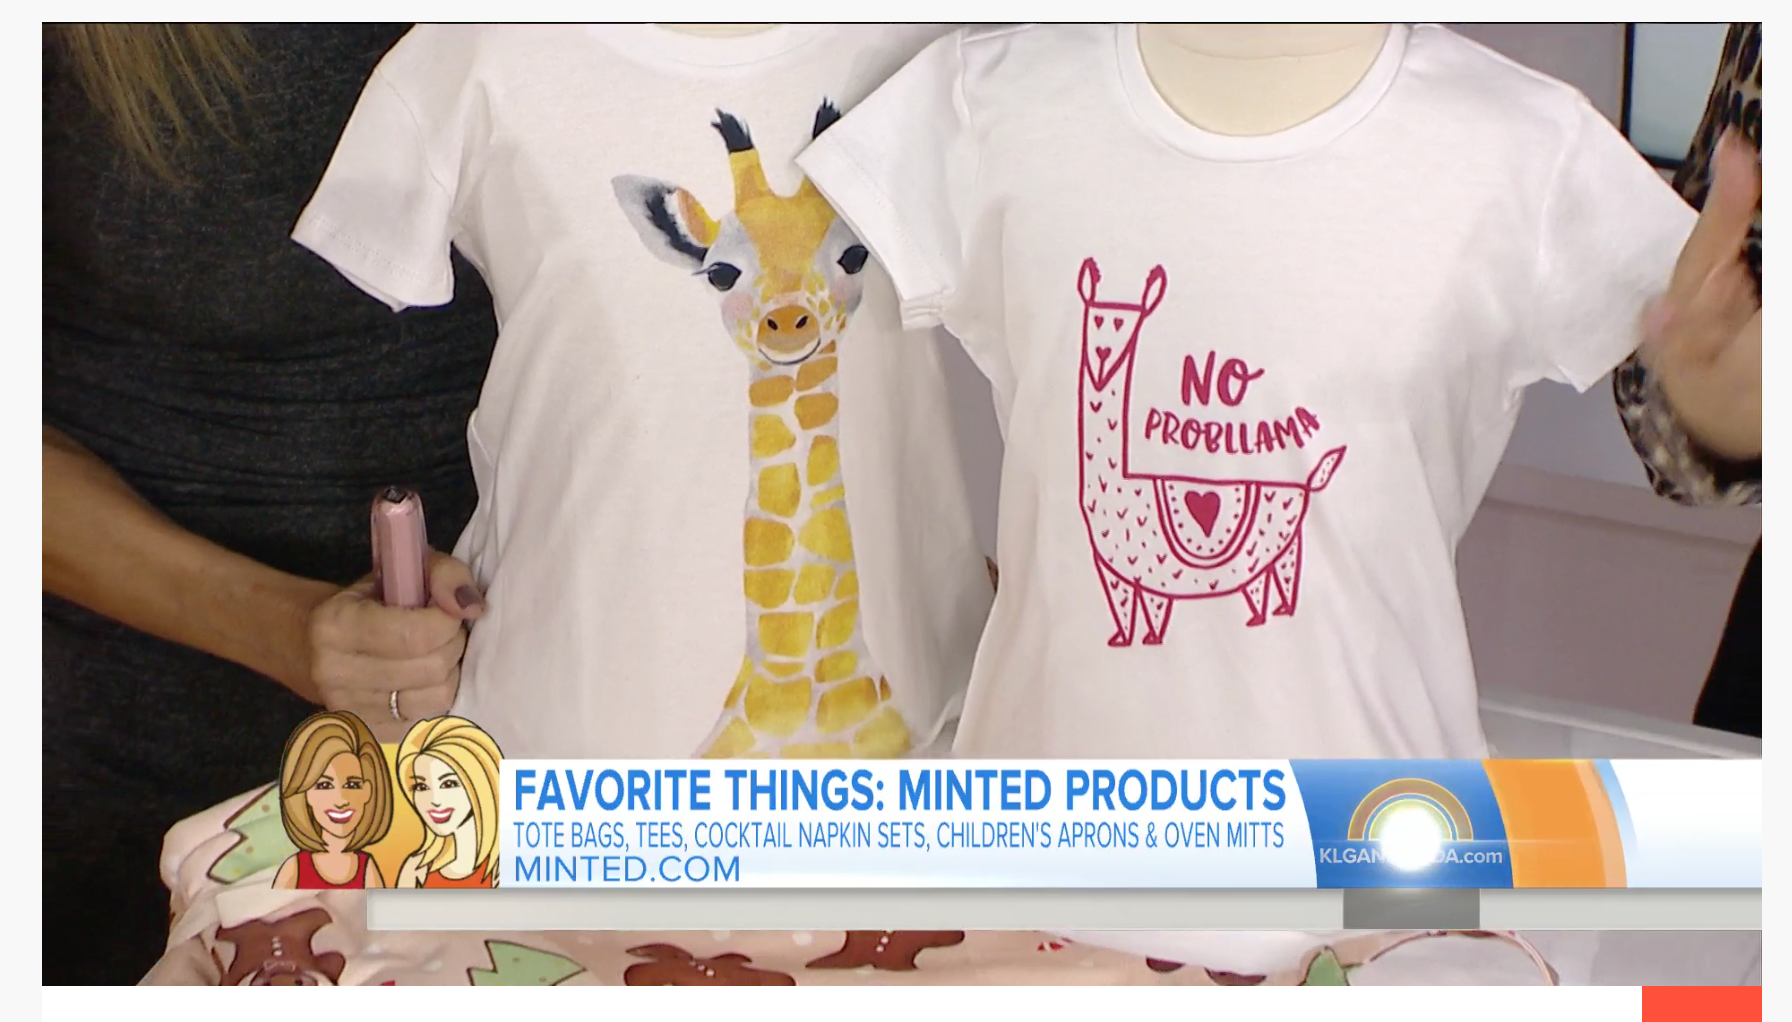 Kids Llama T-shirt by Erika Firm for Minted